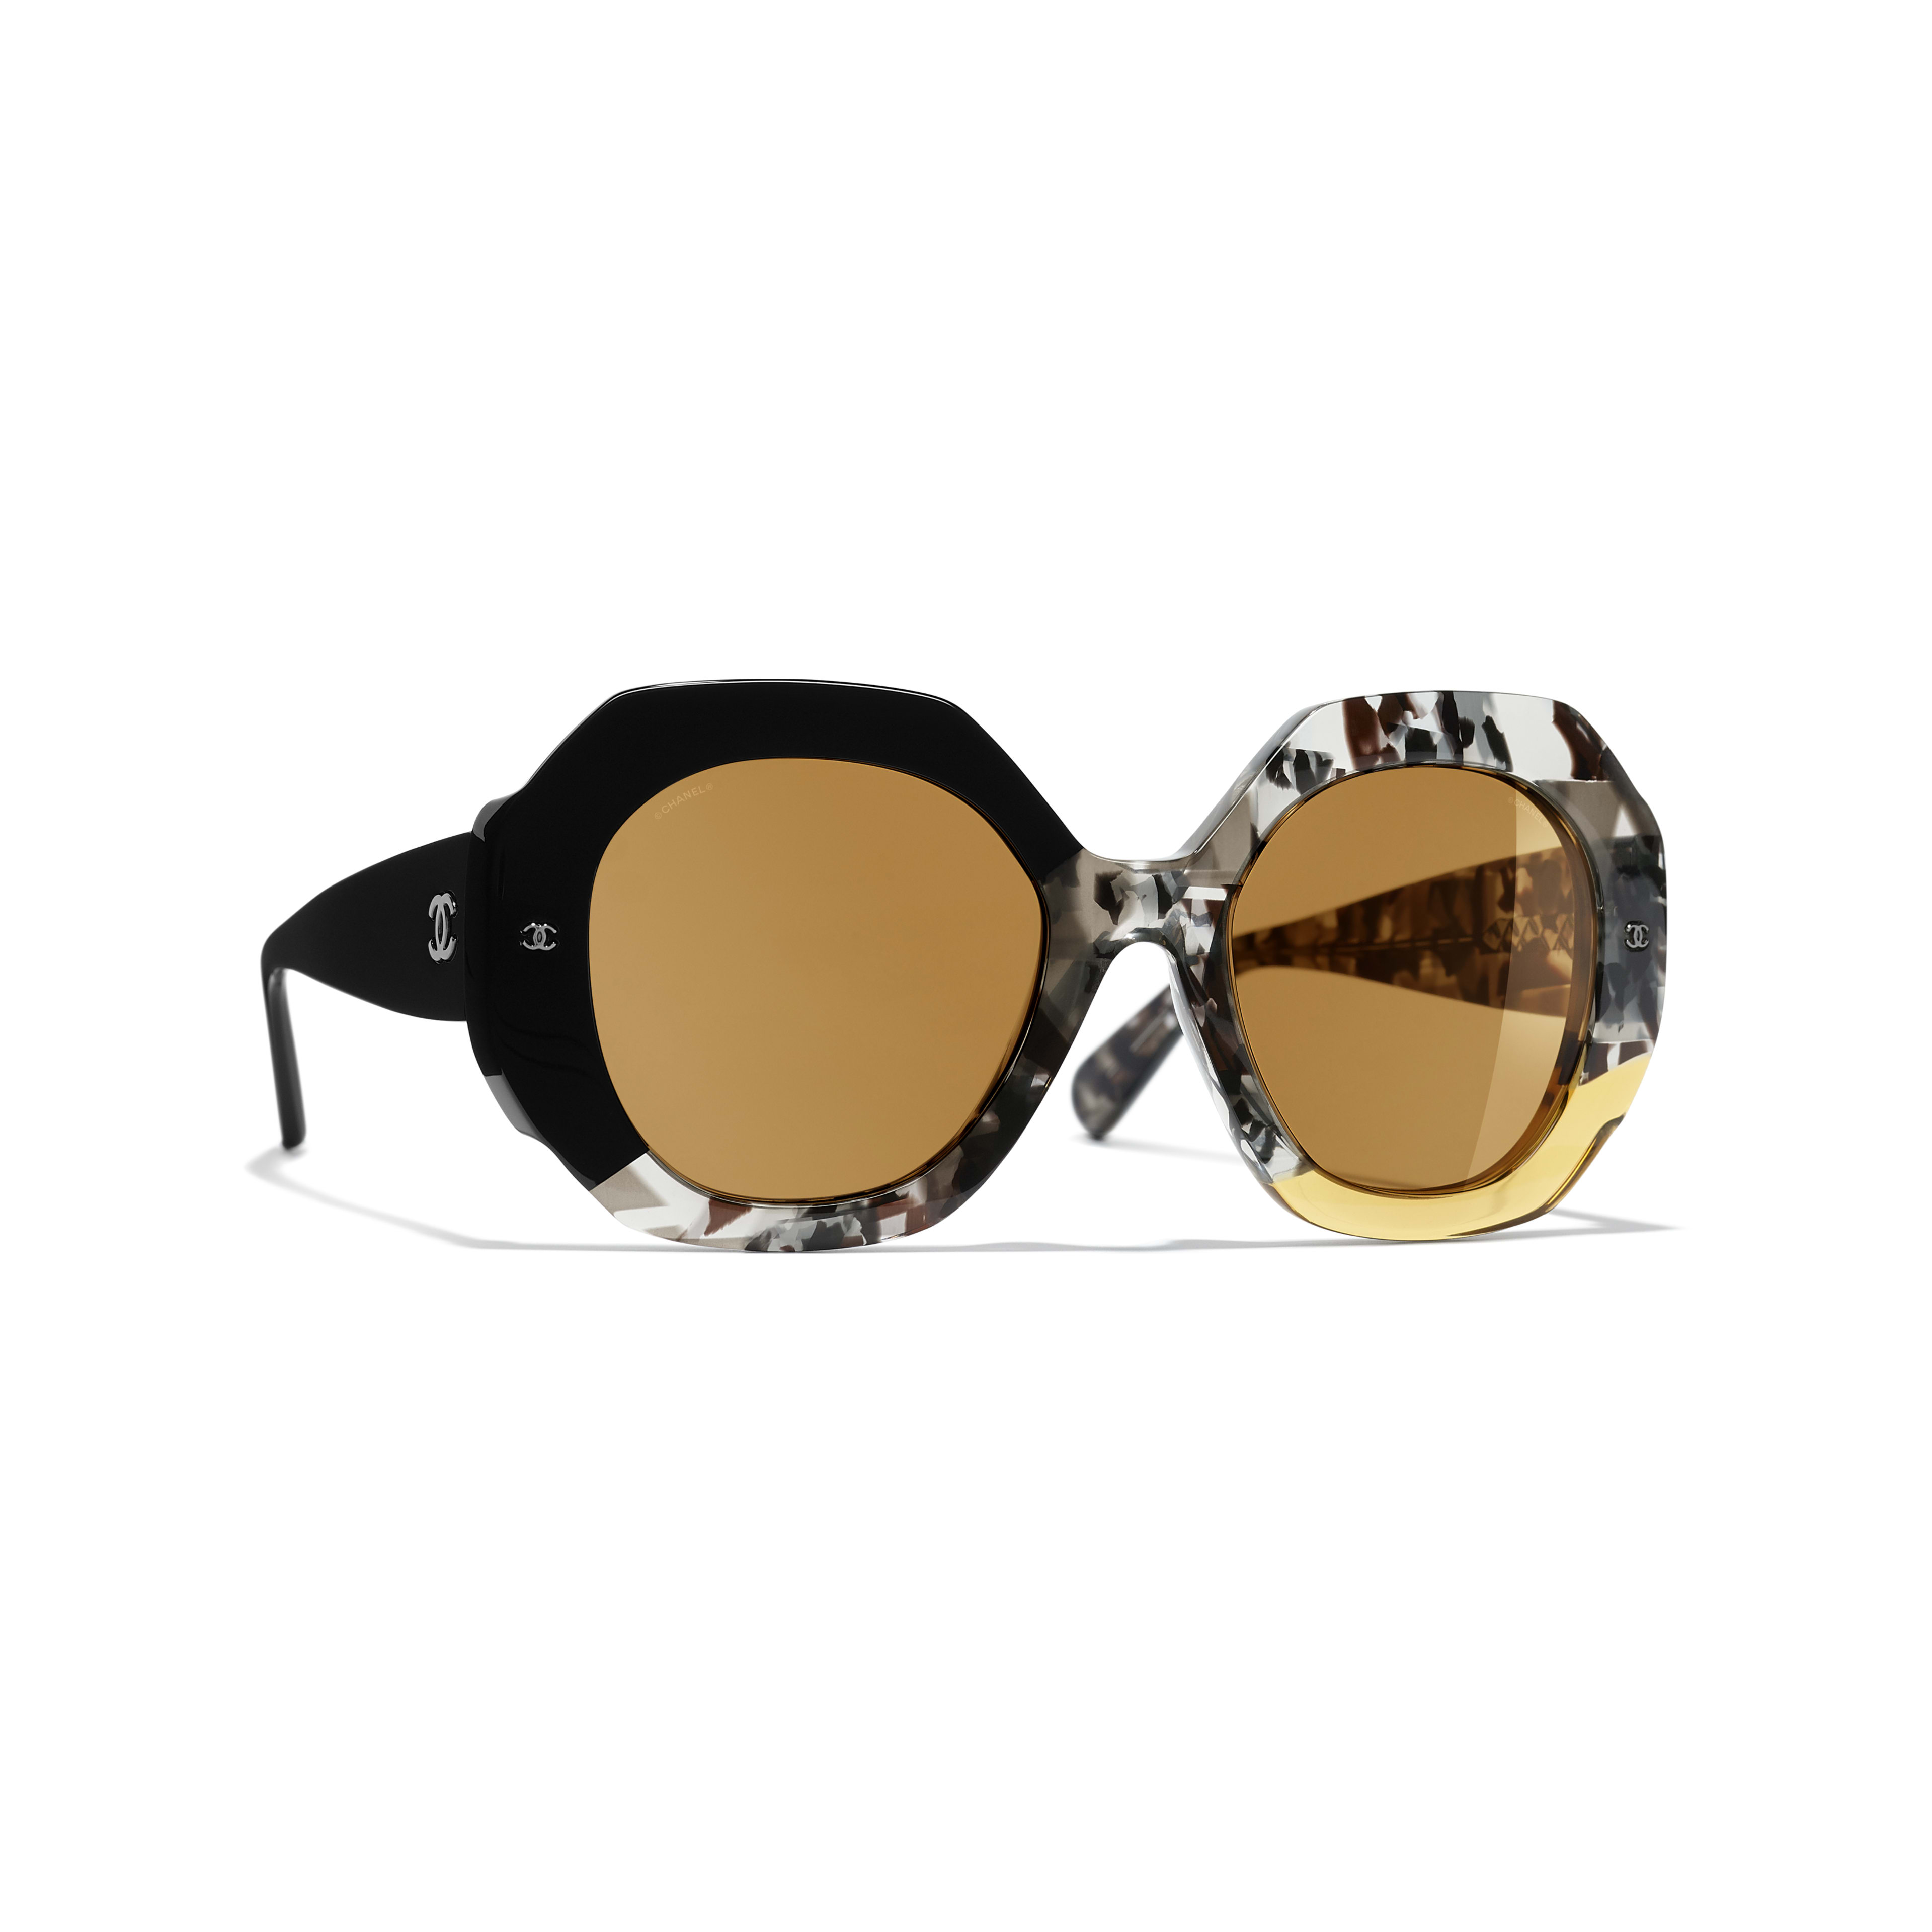 Round Sunglasses - Black, Gray & Yellow - Acetate - Default view - see full sized version